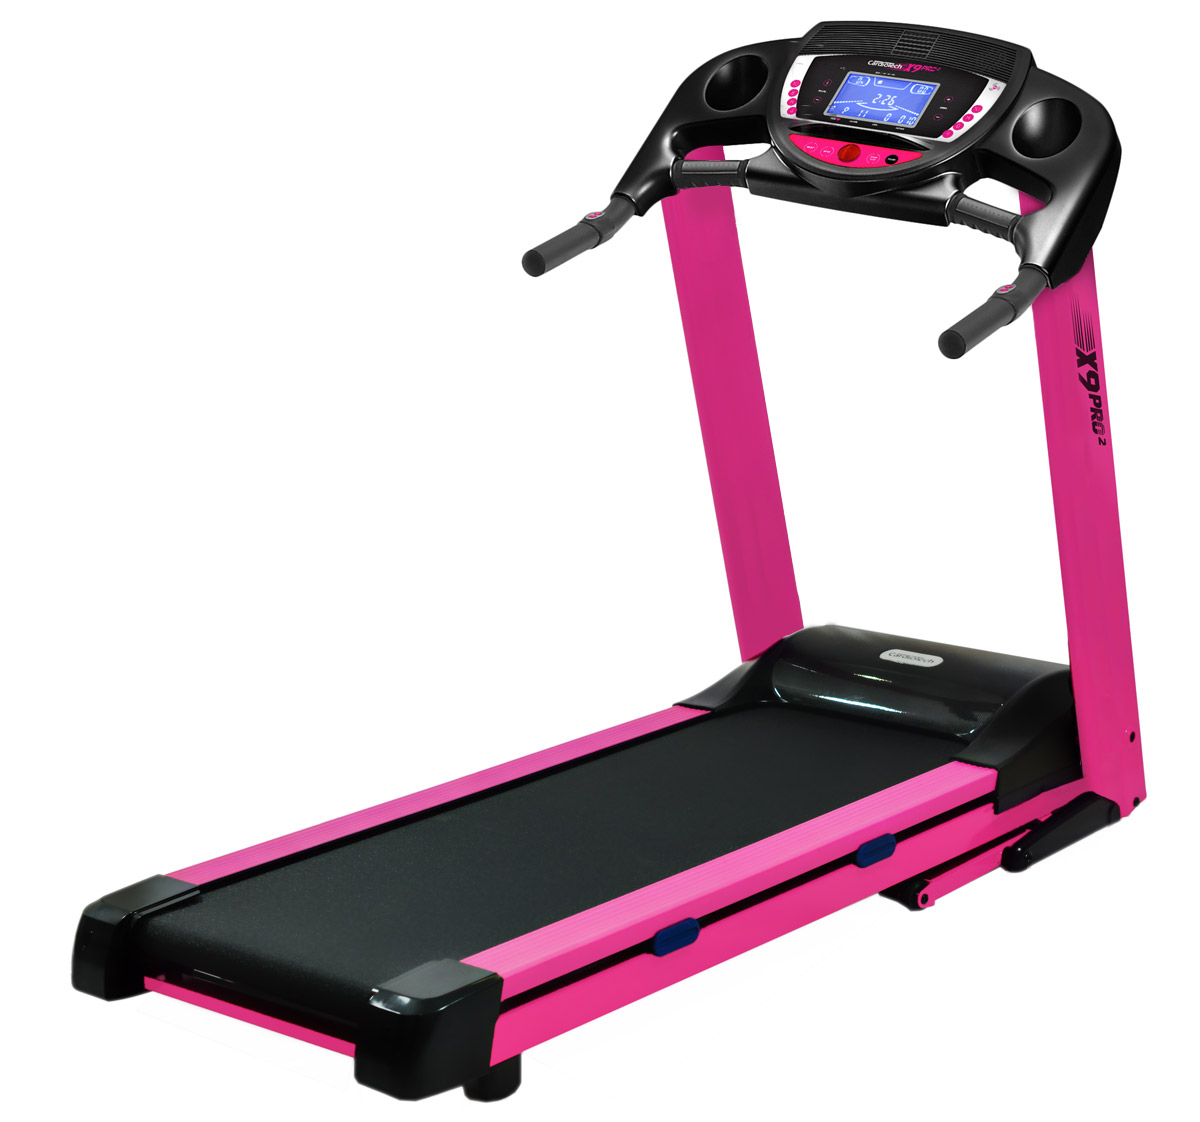 X9 Pro 2 Pink Treadmill by CardioTech